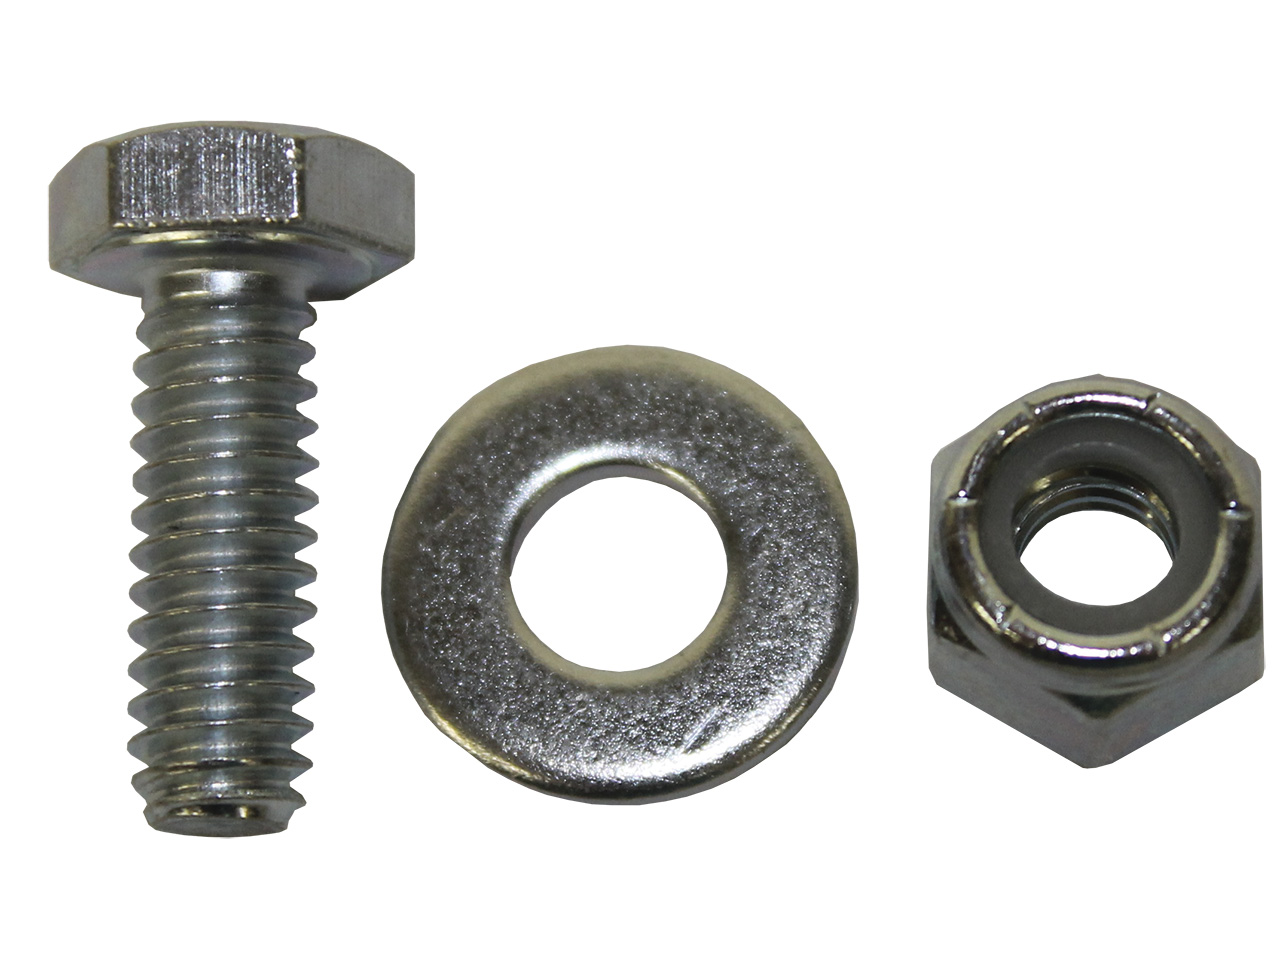 Picture of MD3 Plastic Body Brace Bolt Kit